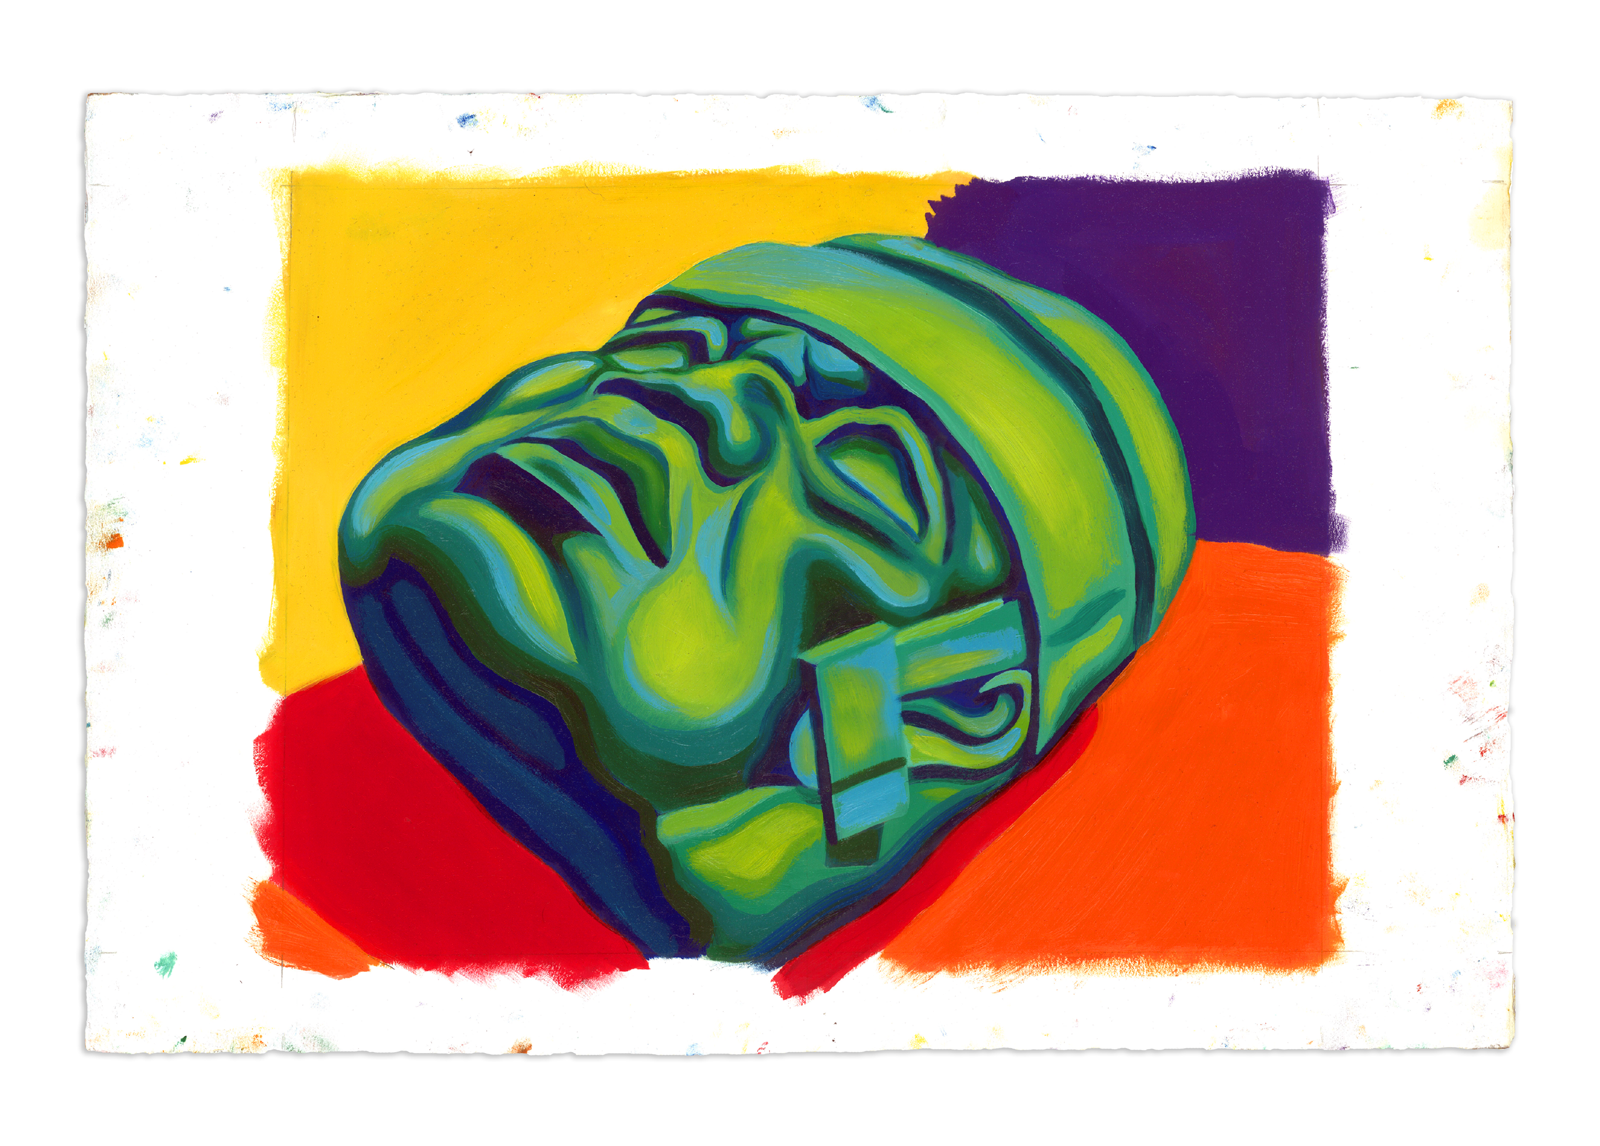 Olmec Head 002 - Oil at 12 x 16 in. on 22 x 15 in. BFK Rives